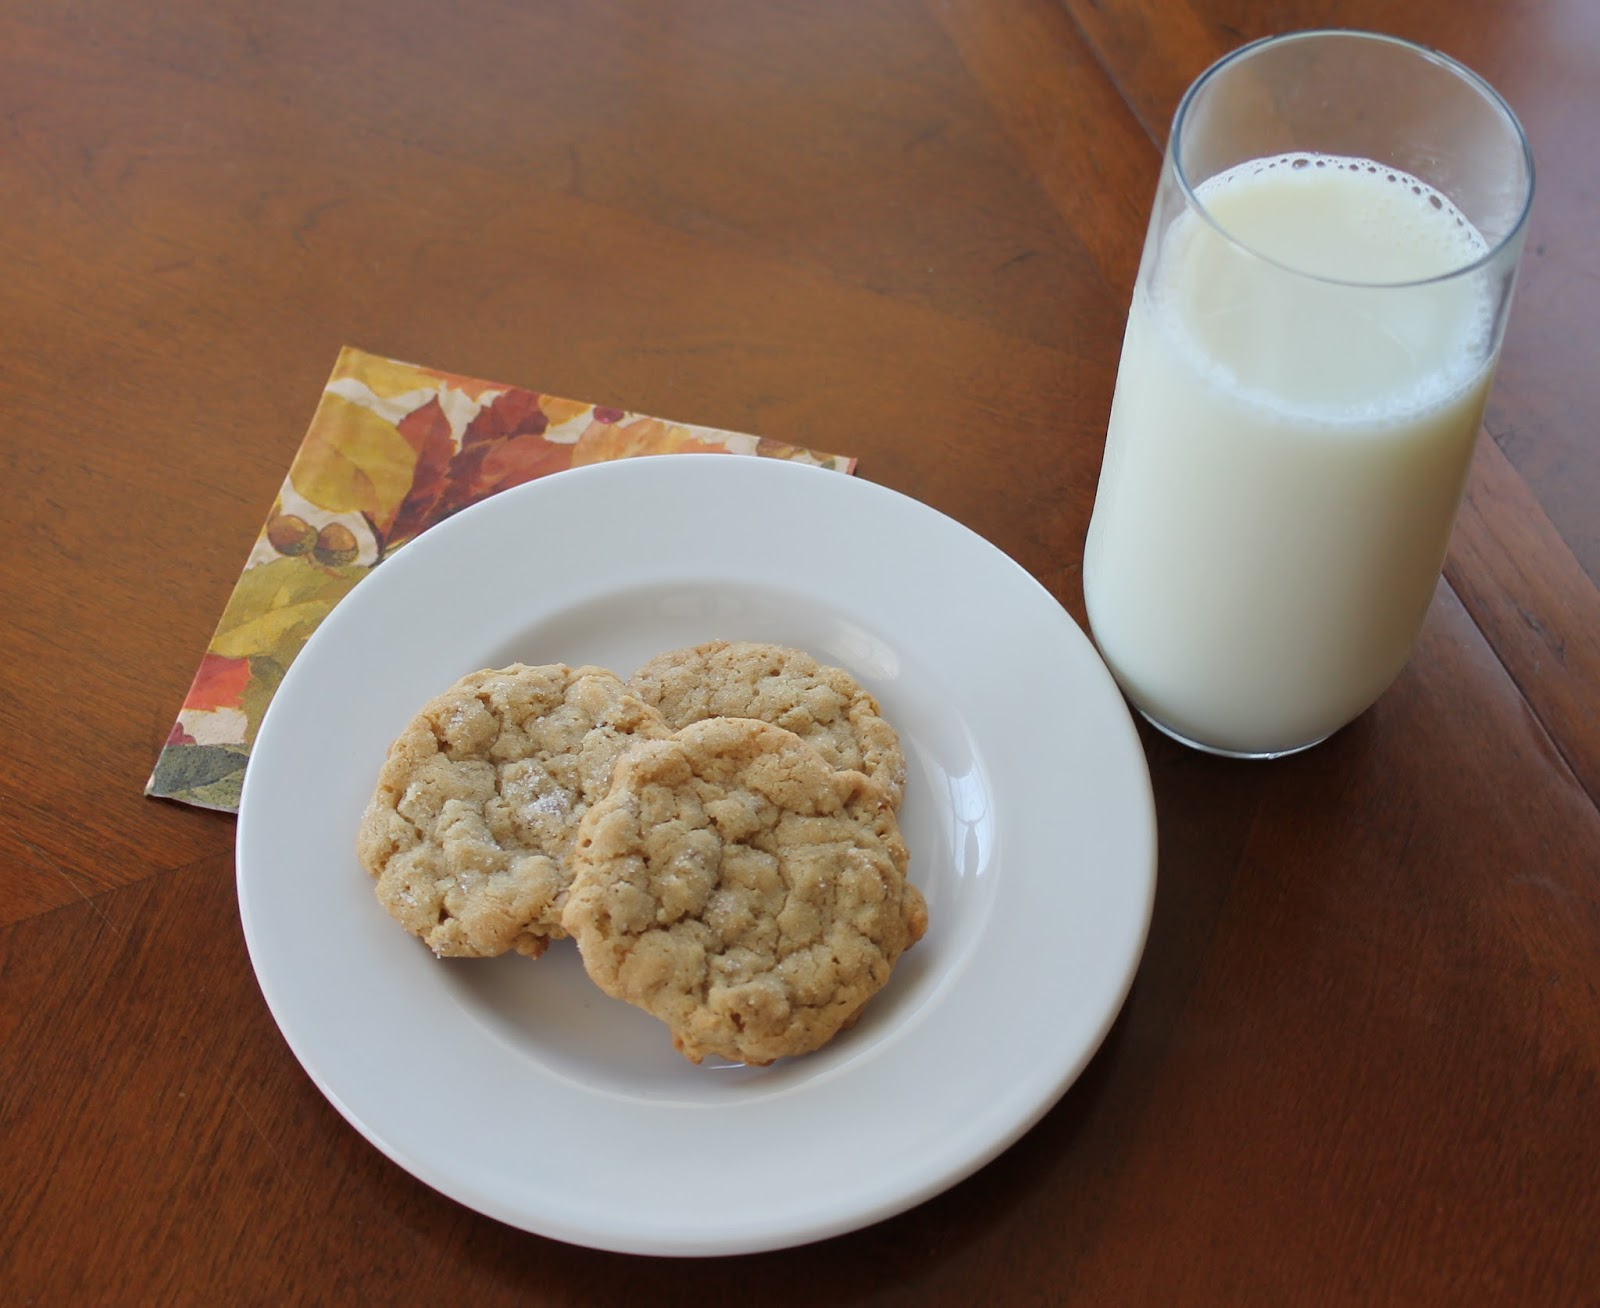 At Home on the Meadow: Grandma's Old Fashioned Oatmeal Cookies